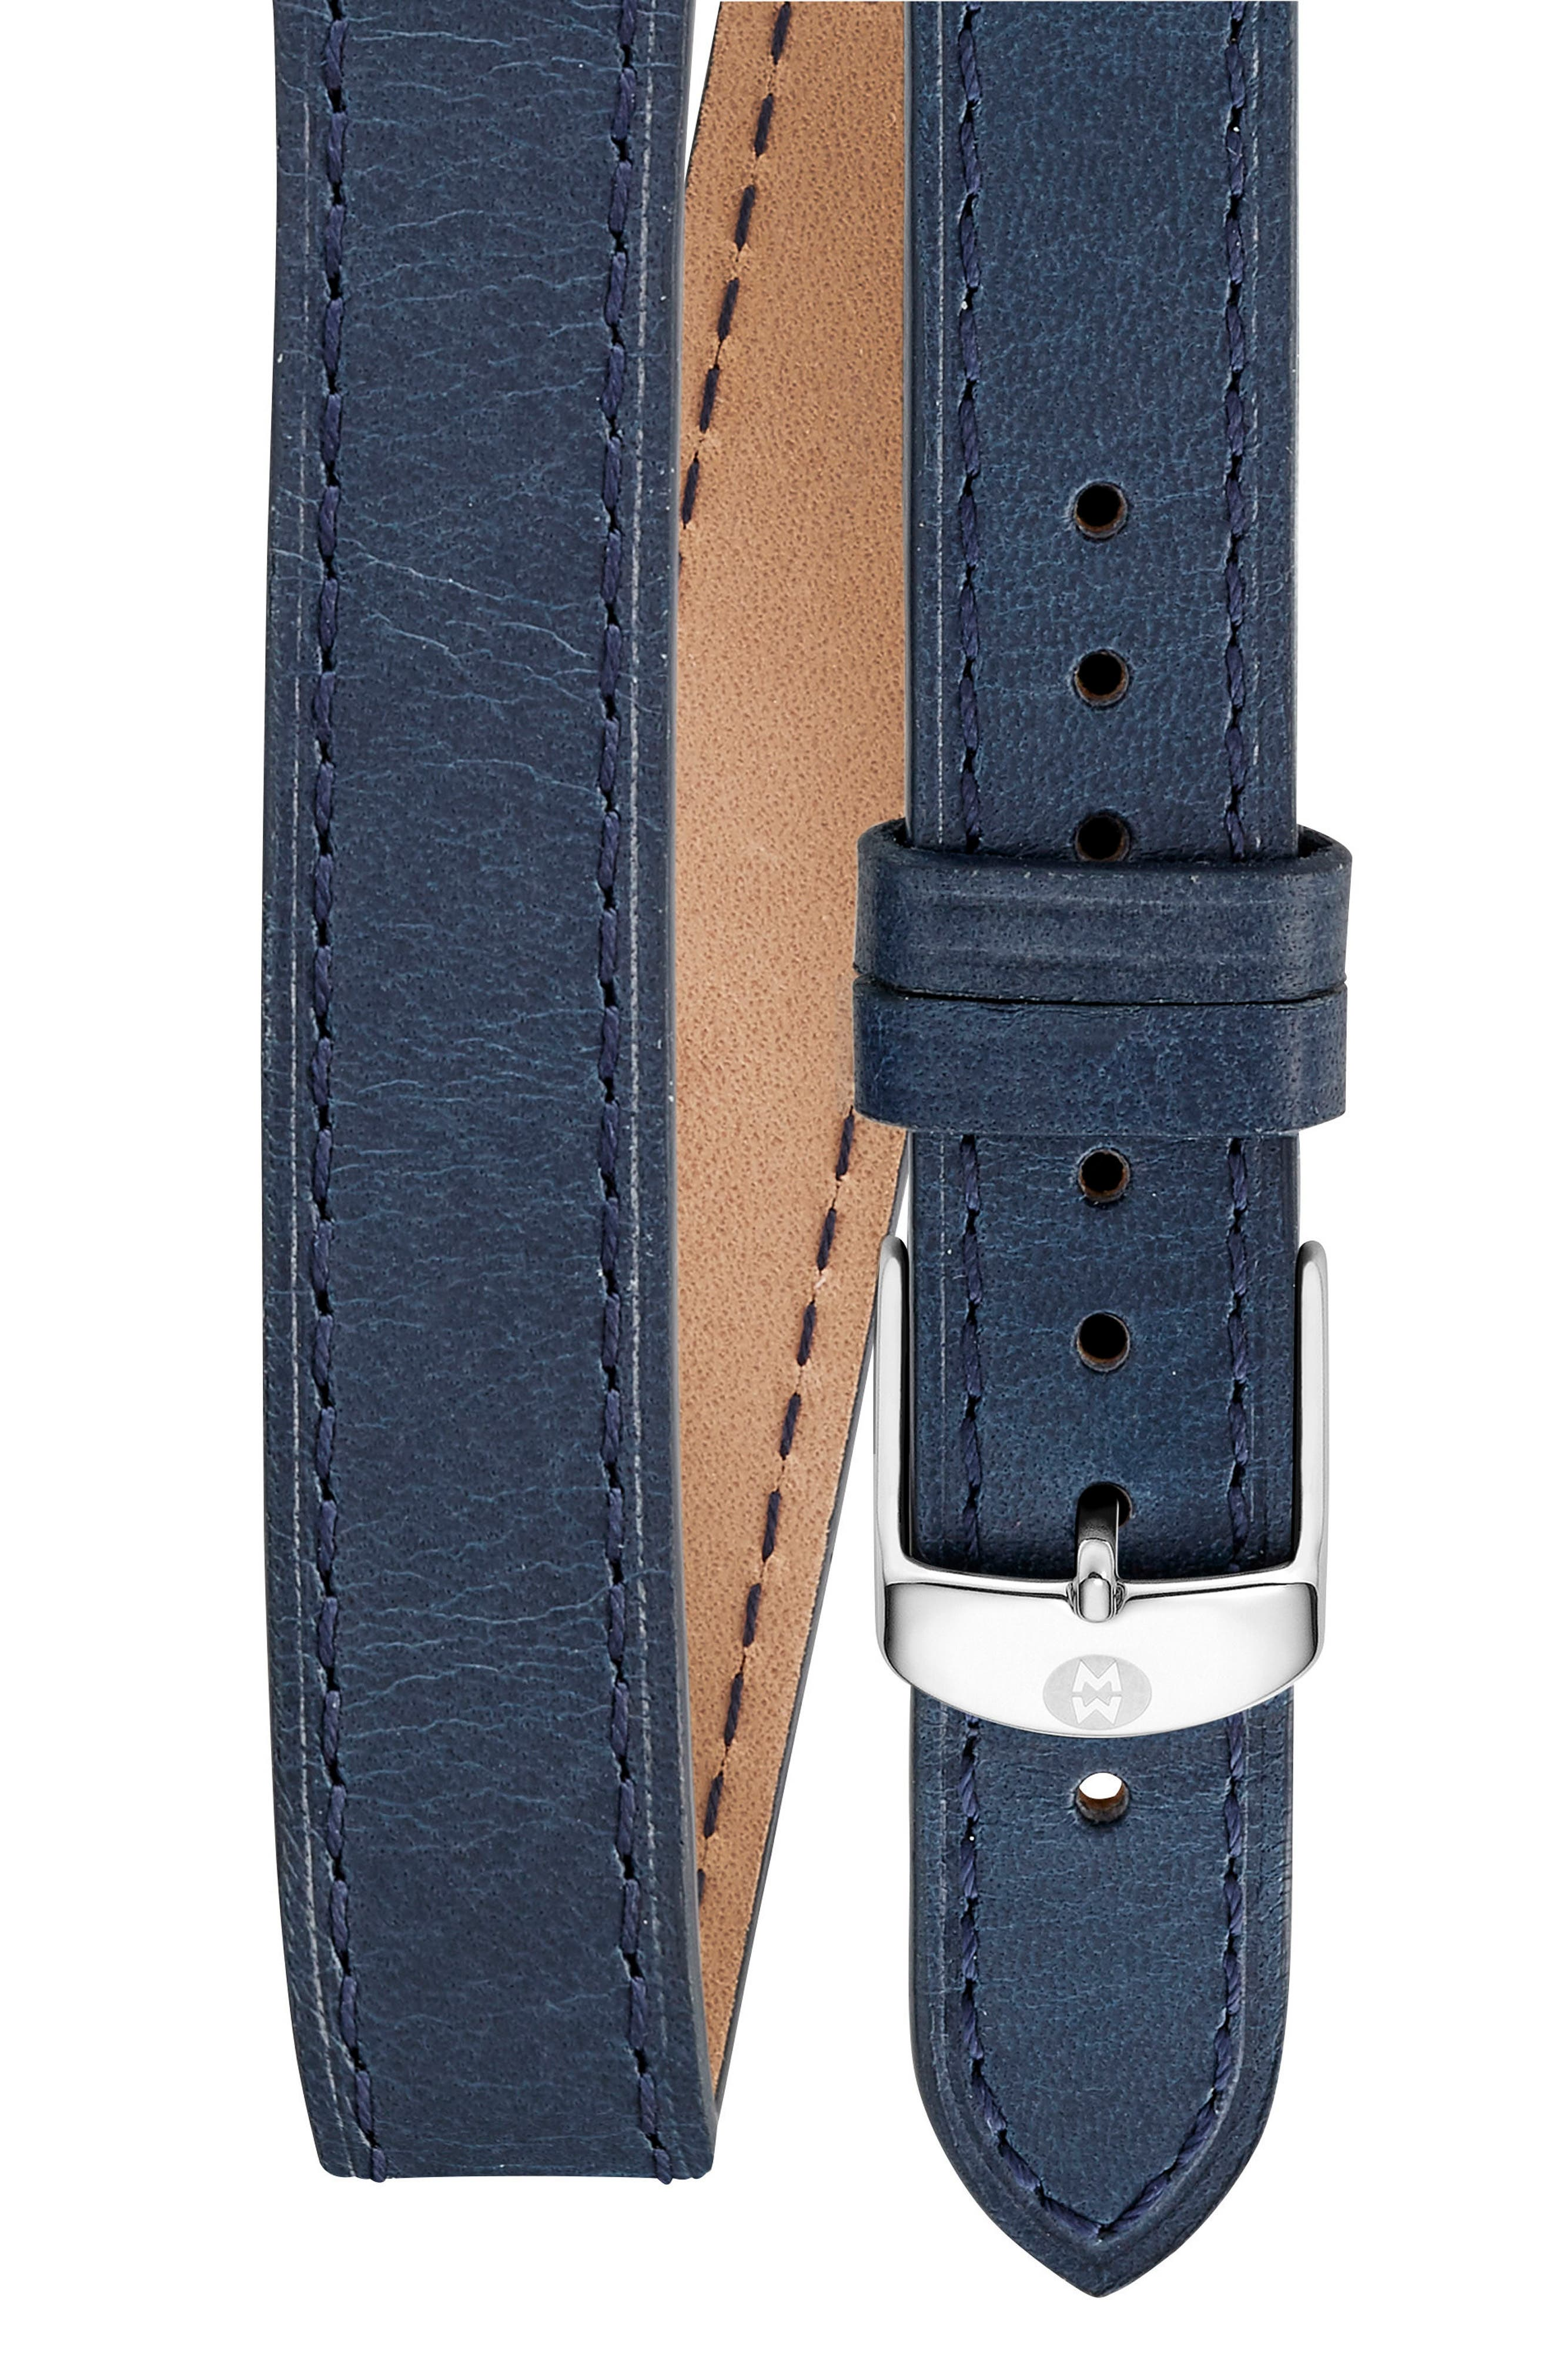 16mm Leather Watch Strap,                             Main thumbnail 1, color,                             NAVY